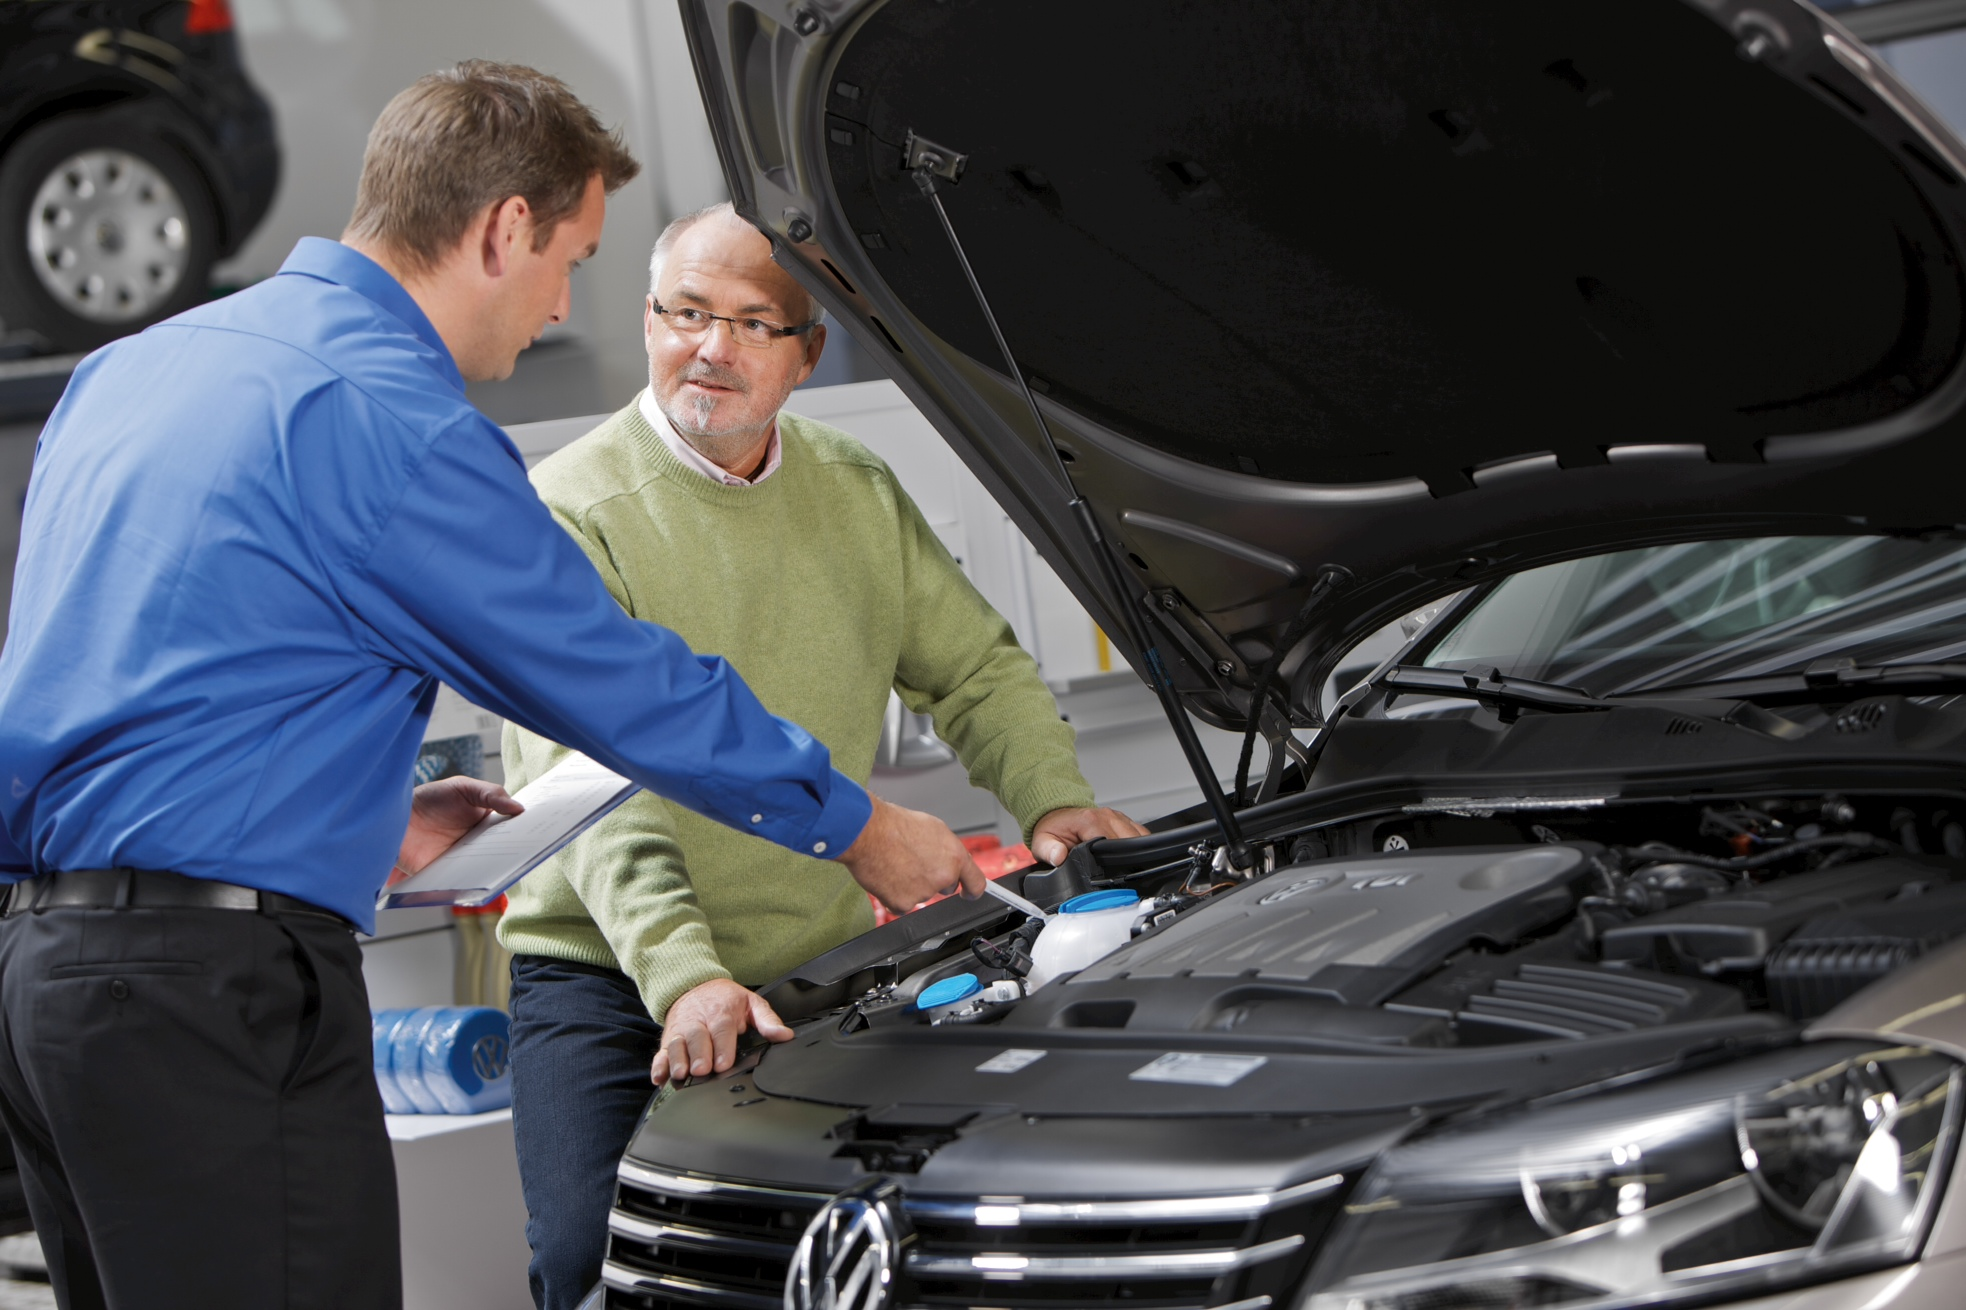 The Significance Of VW Independent Services